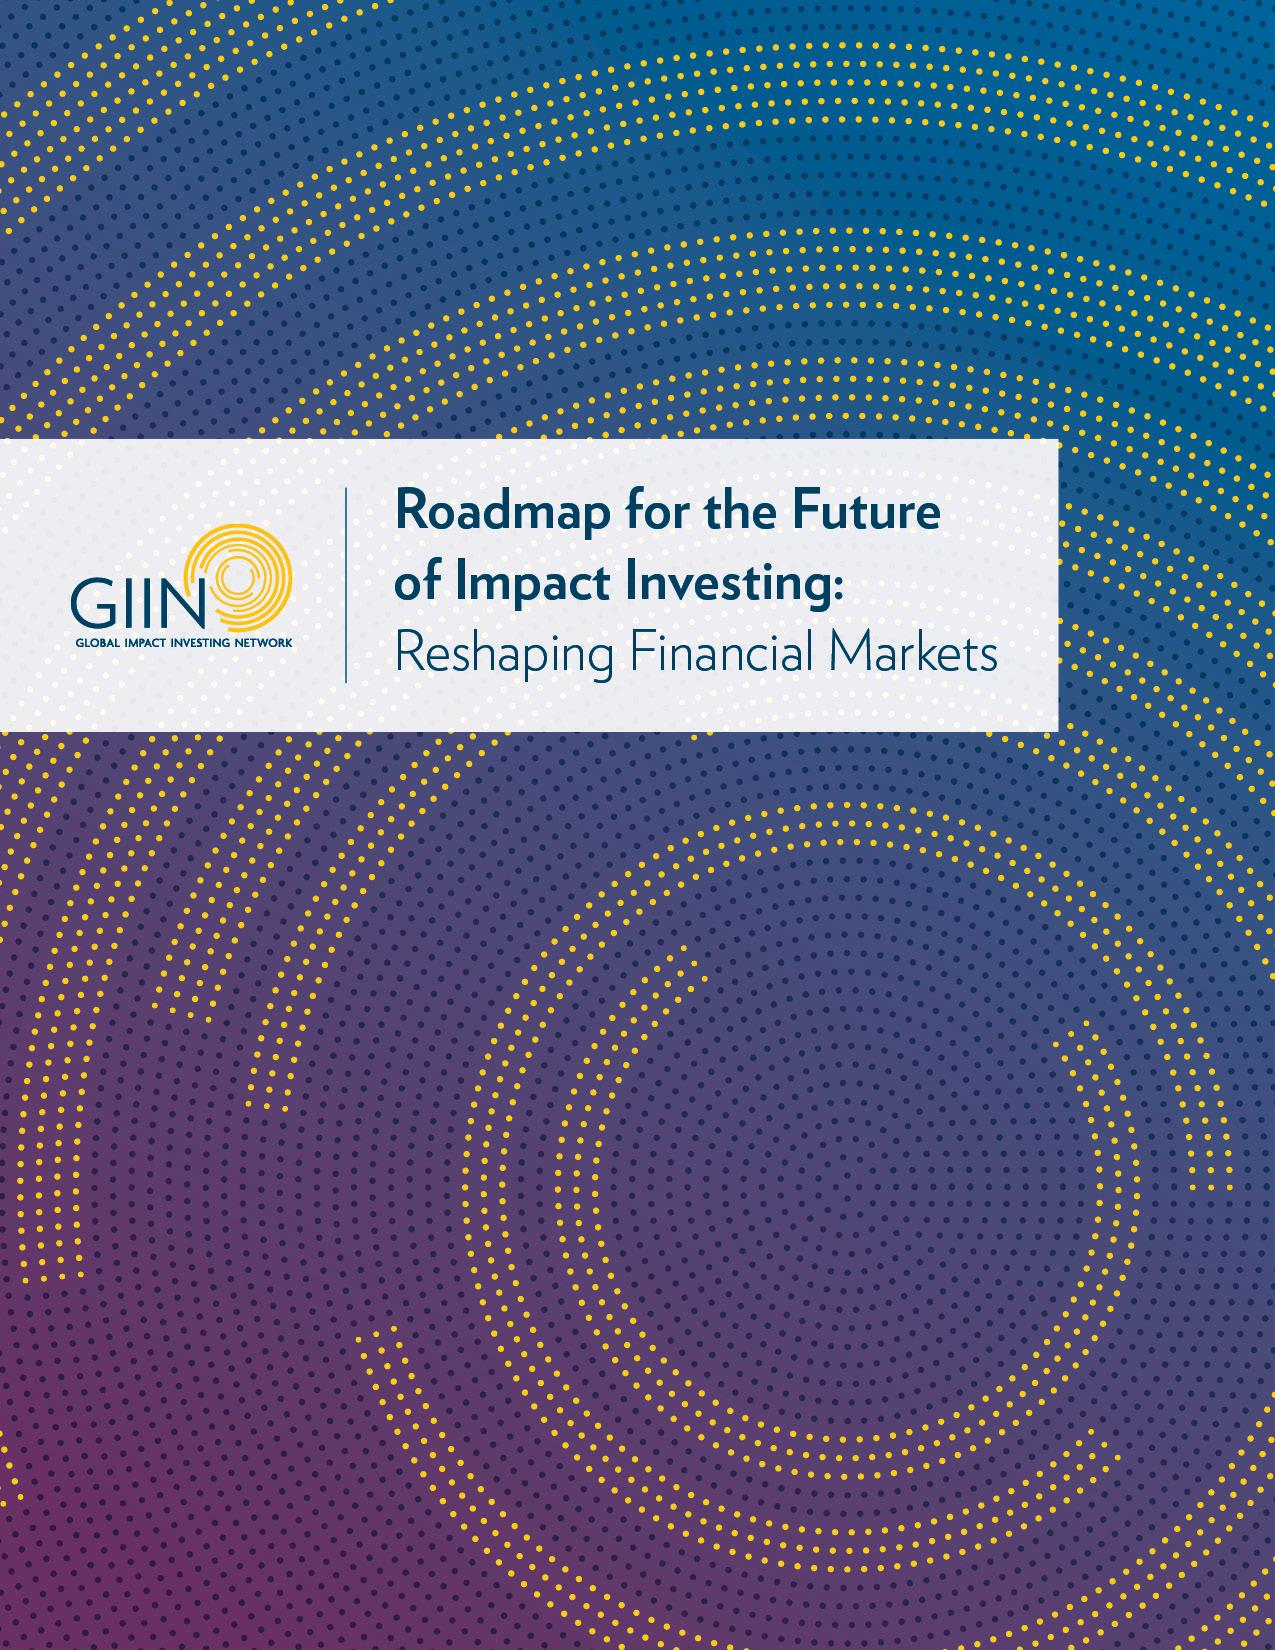 Global Impact Investing Network Launches Roadmap For The Future Of Impact Investing